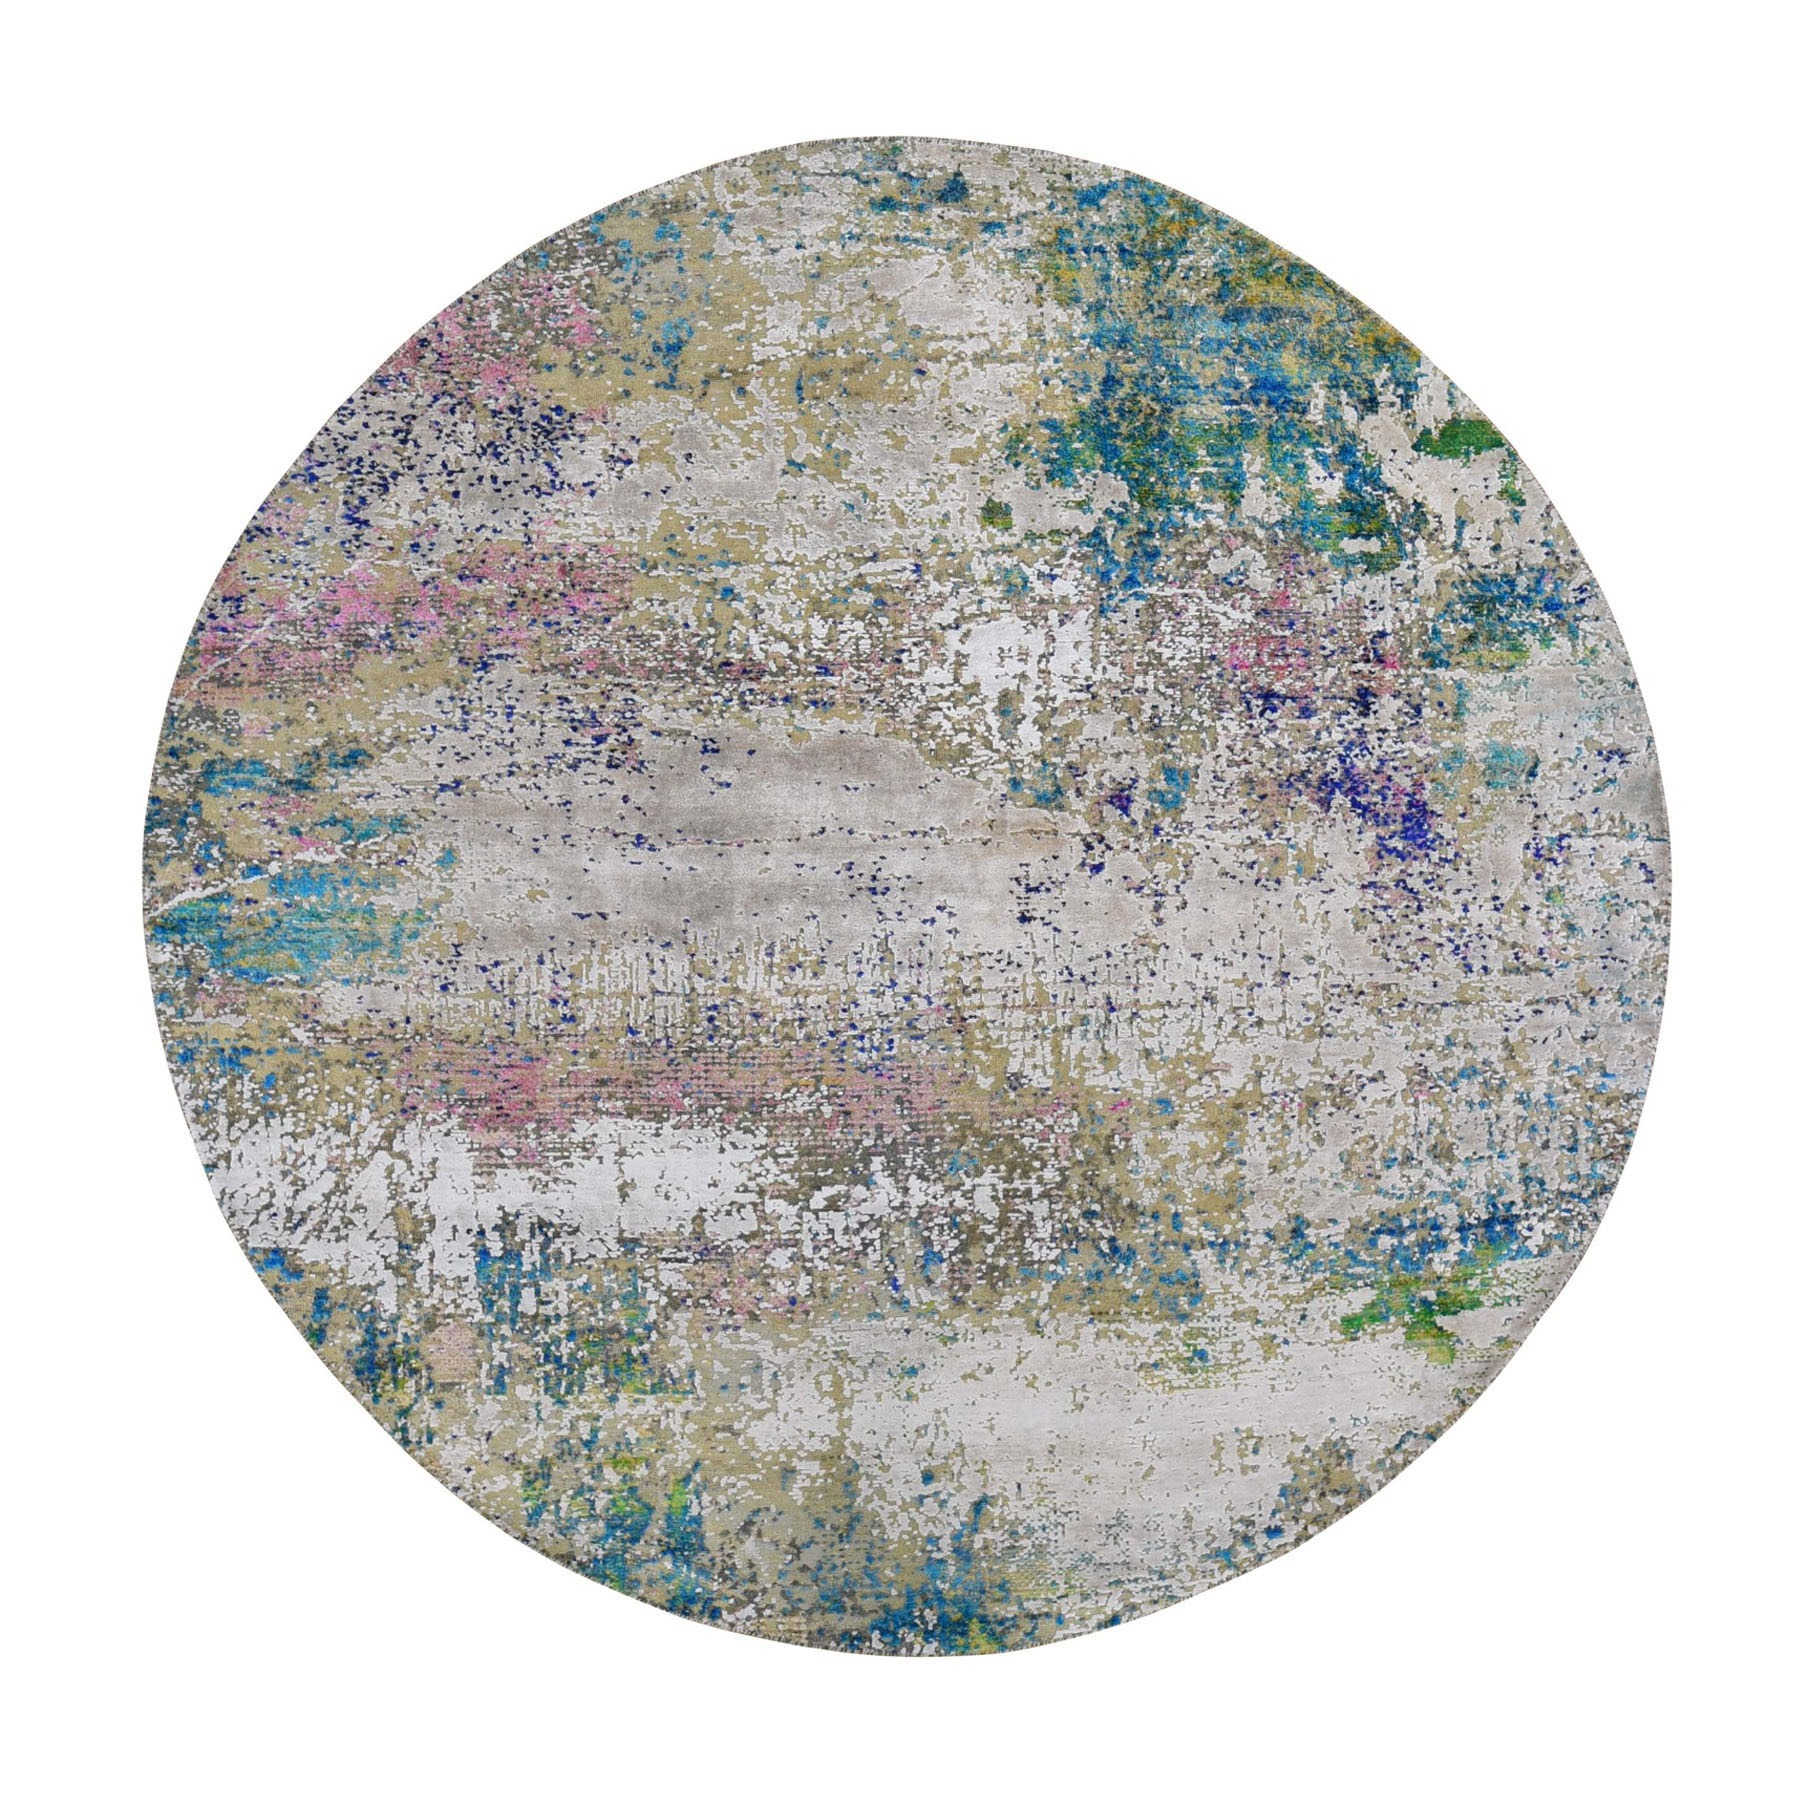 8'x8' Round Abstract Design Wool And Sari Silk Hand Woven Oriental Rug